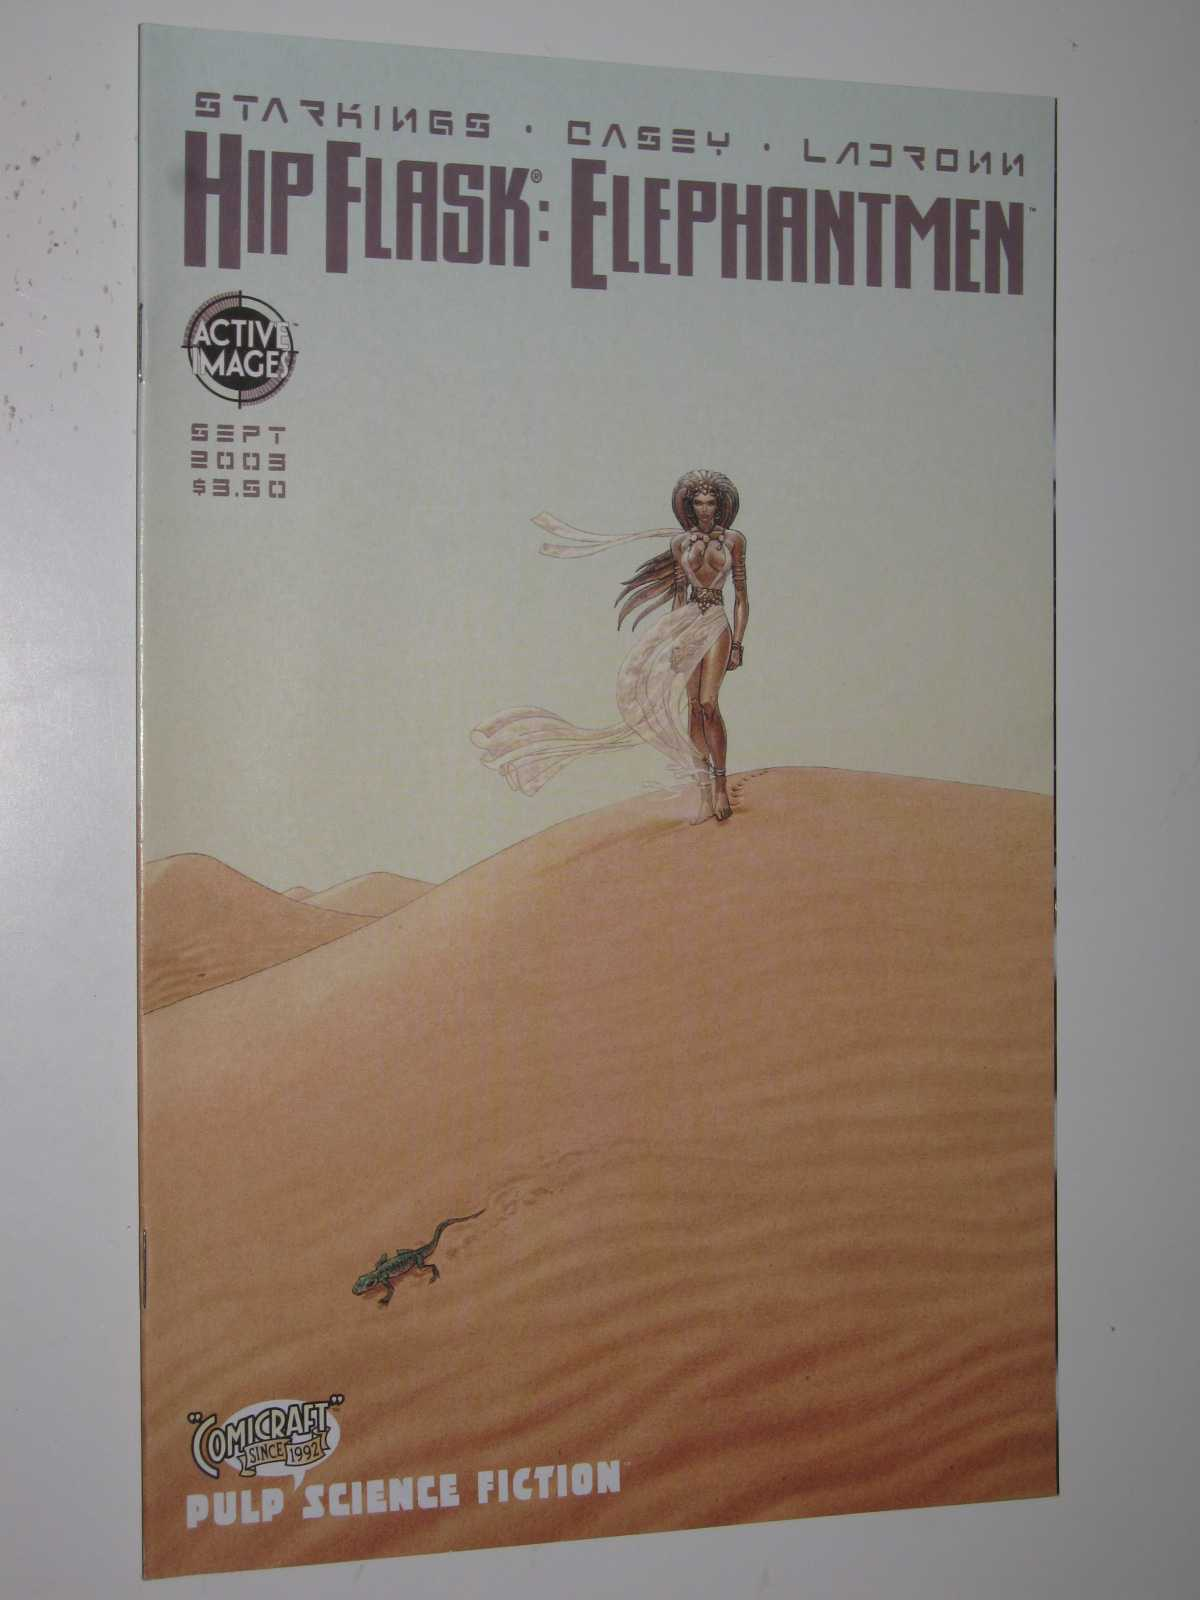 Image for Hip Flask: Elephantmen September 2003 - Cover 4 of 4